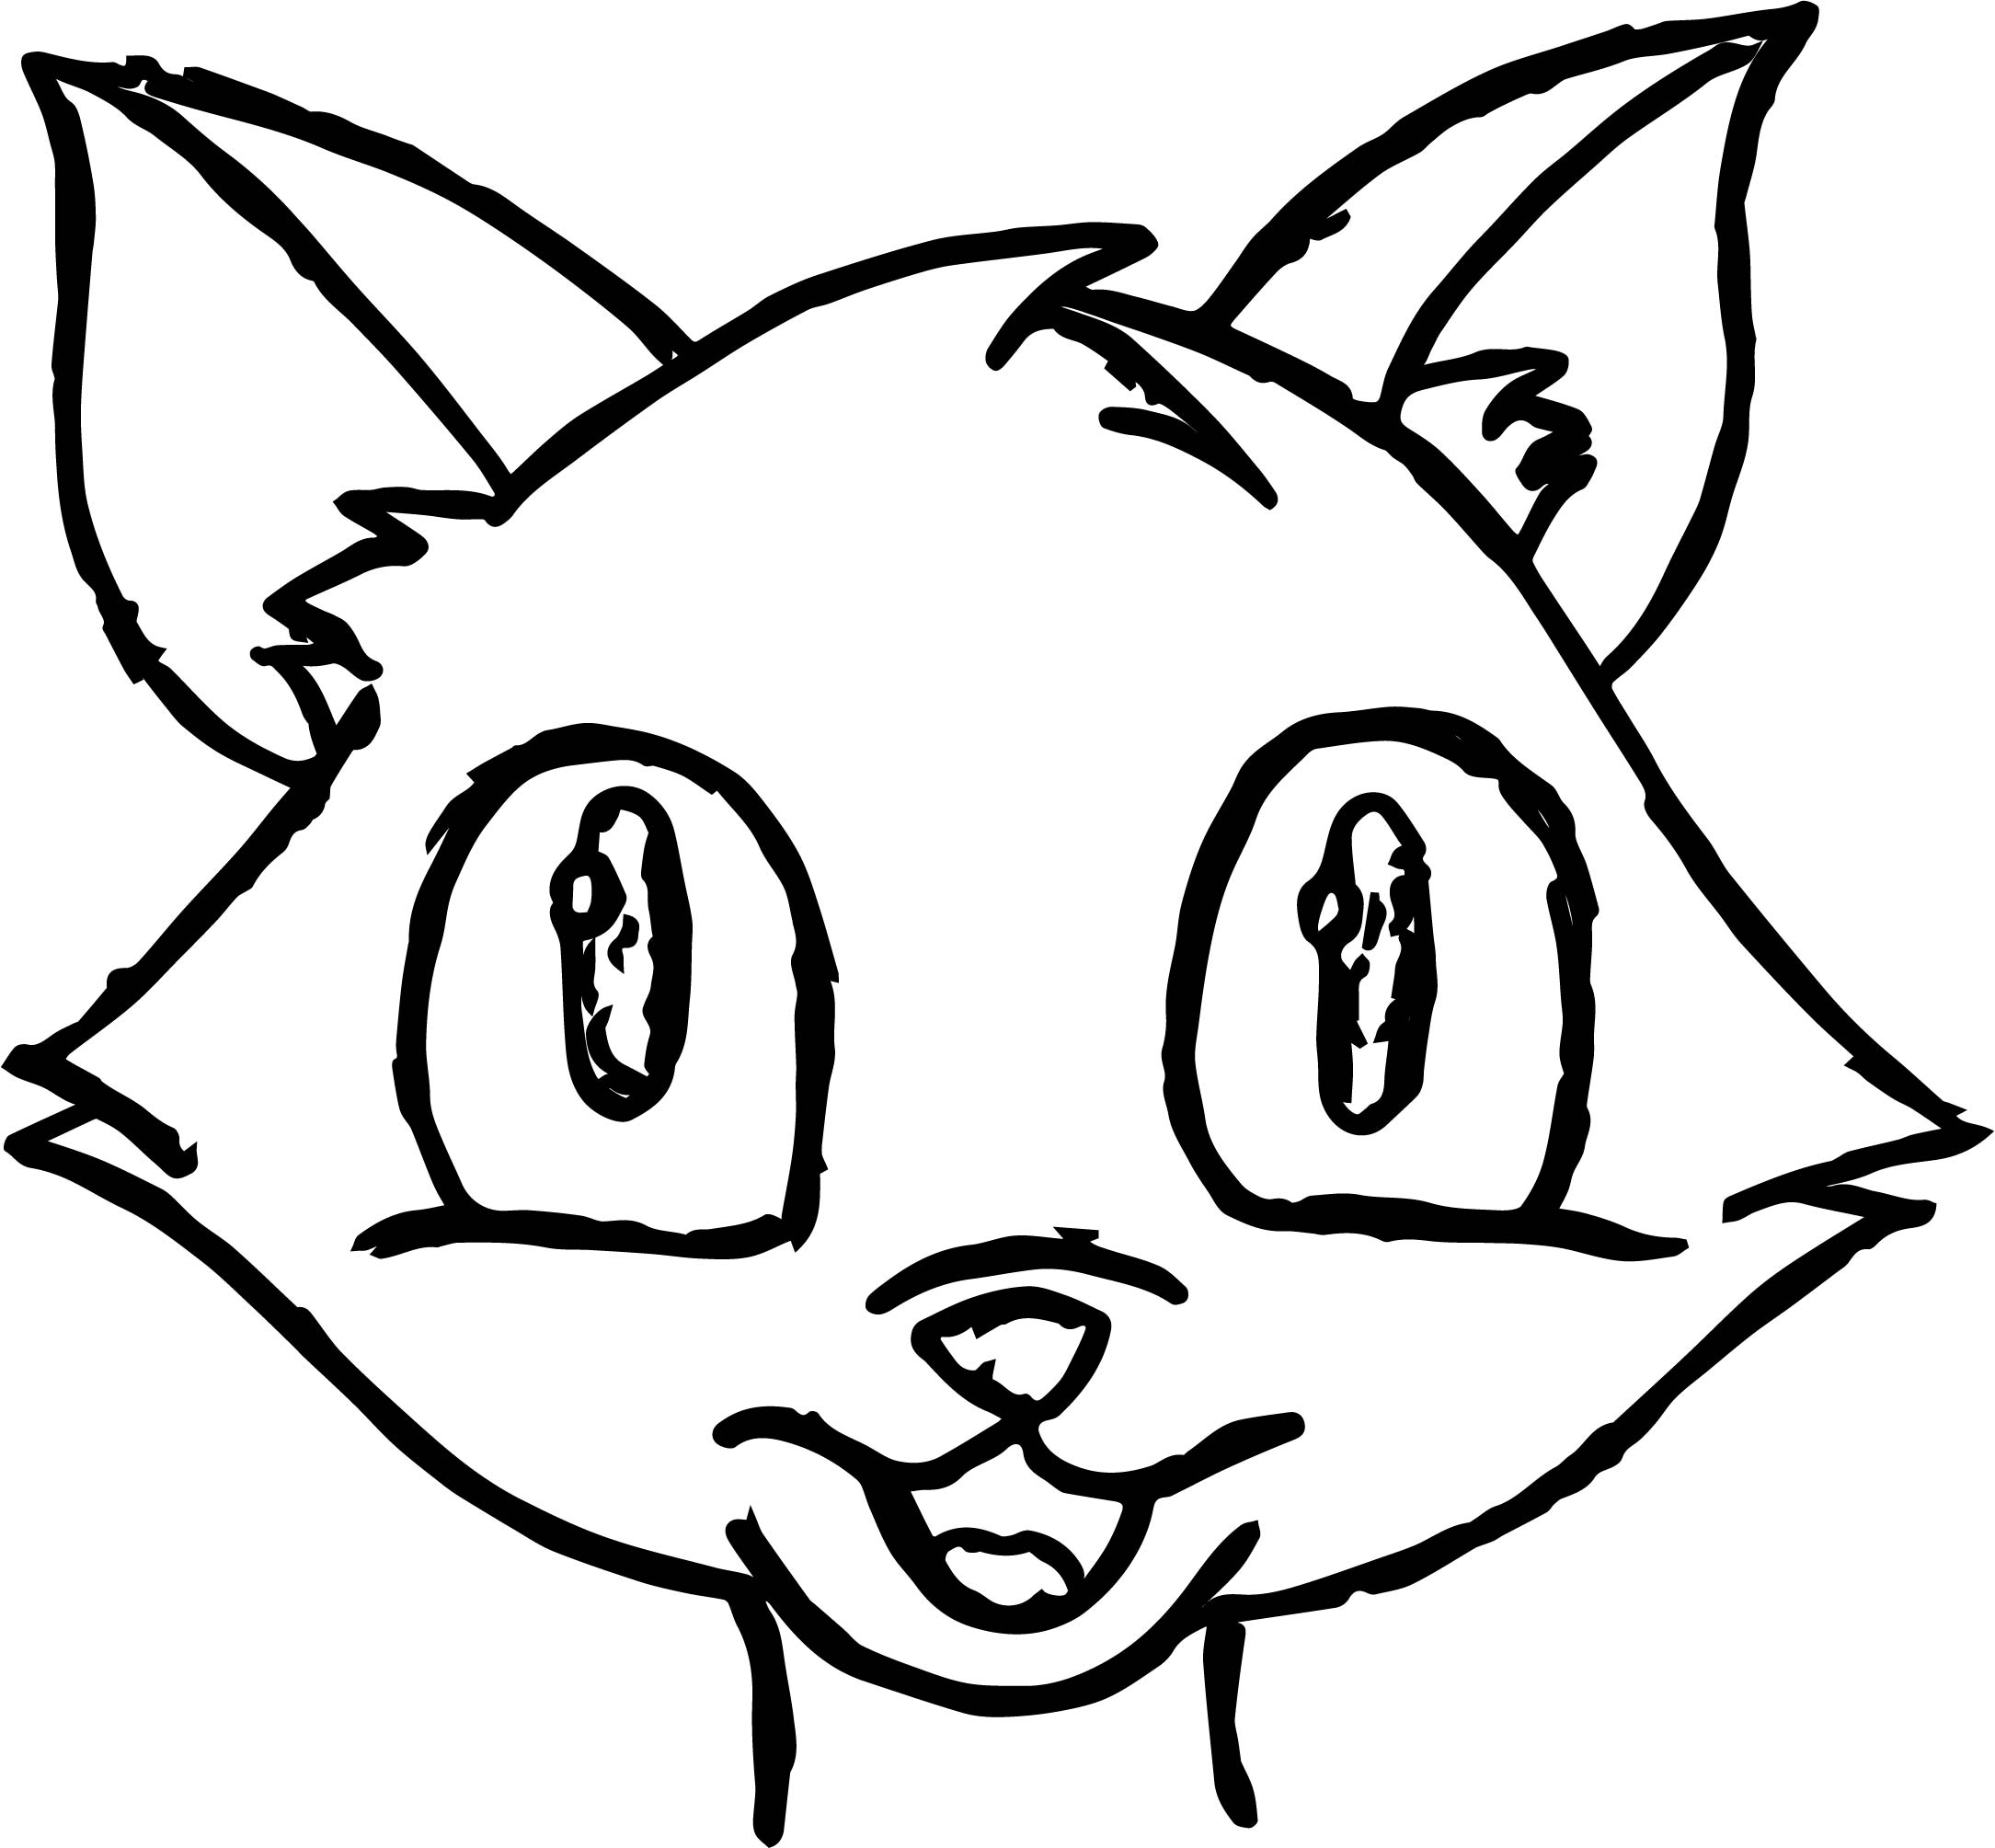 cat face coloring page manga cat face coloring page wecoloringpagecom cat face coloring page